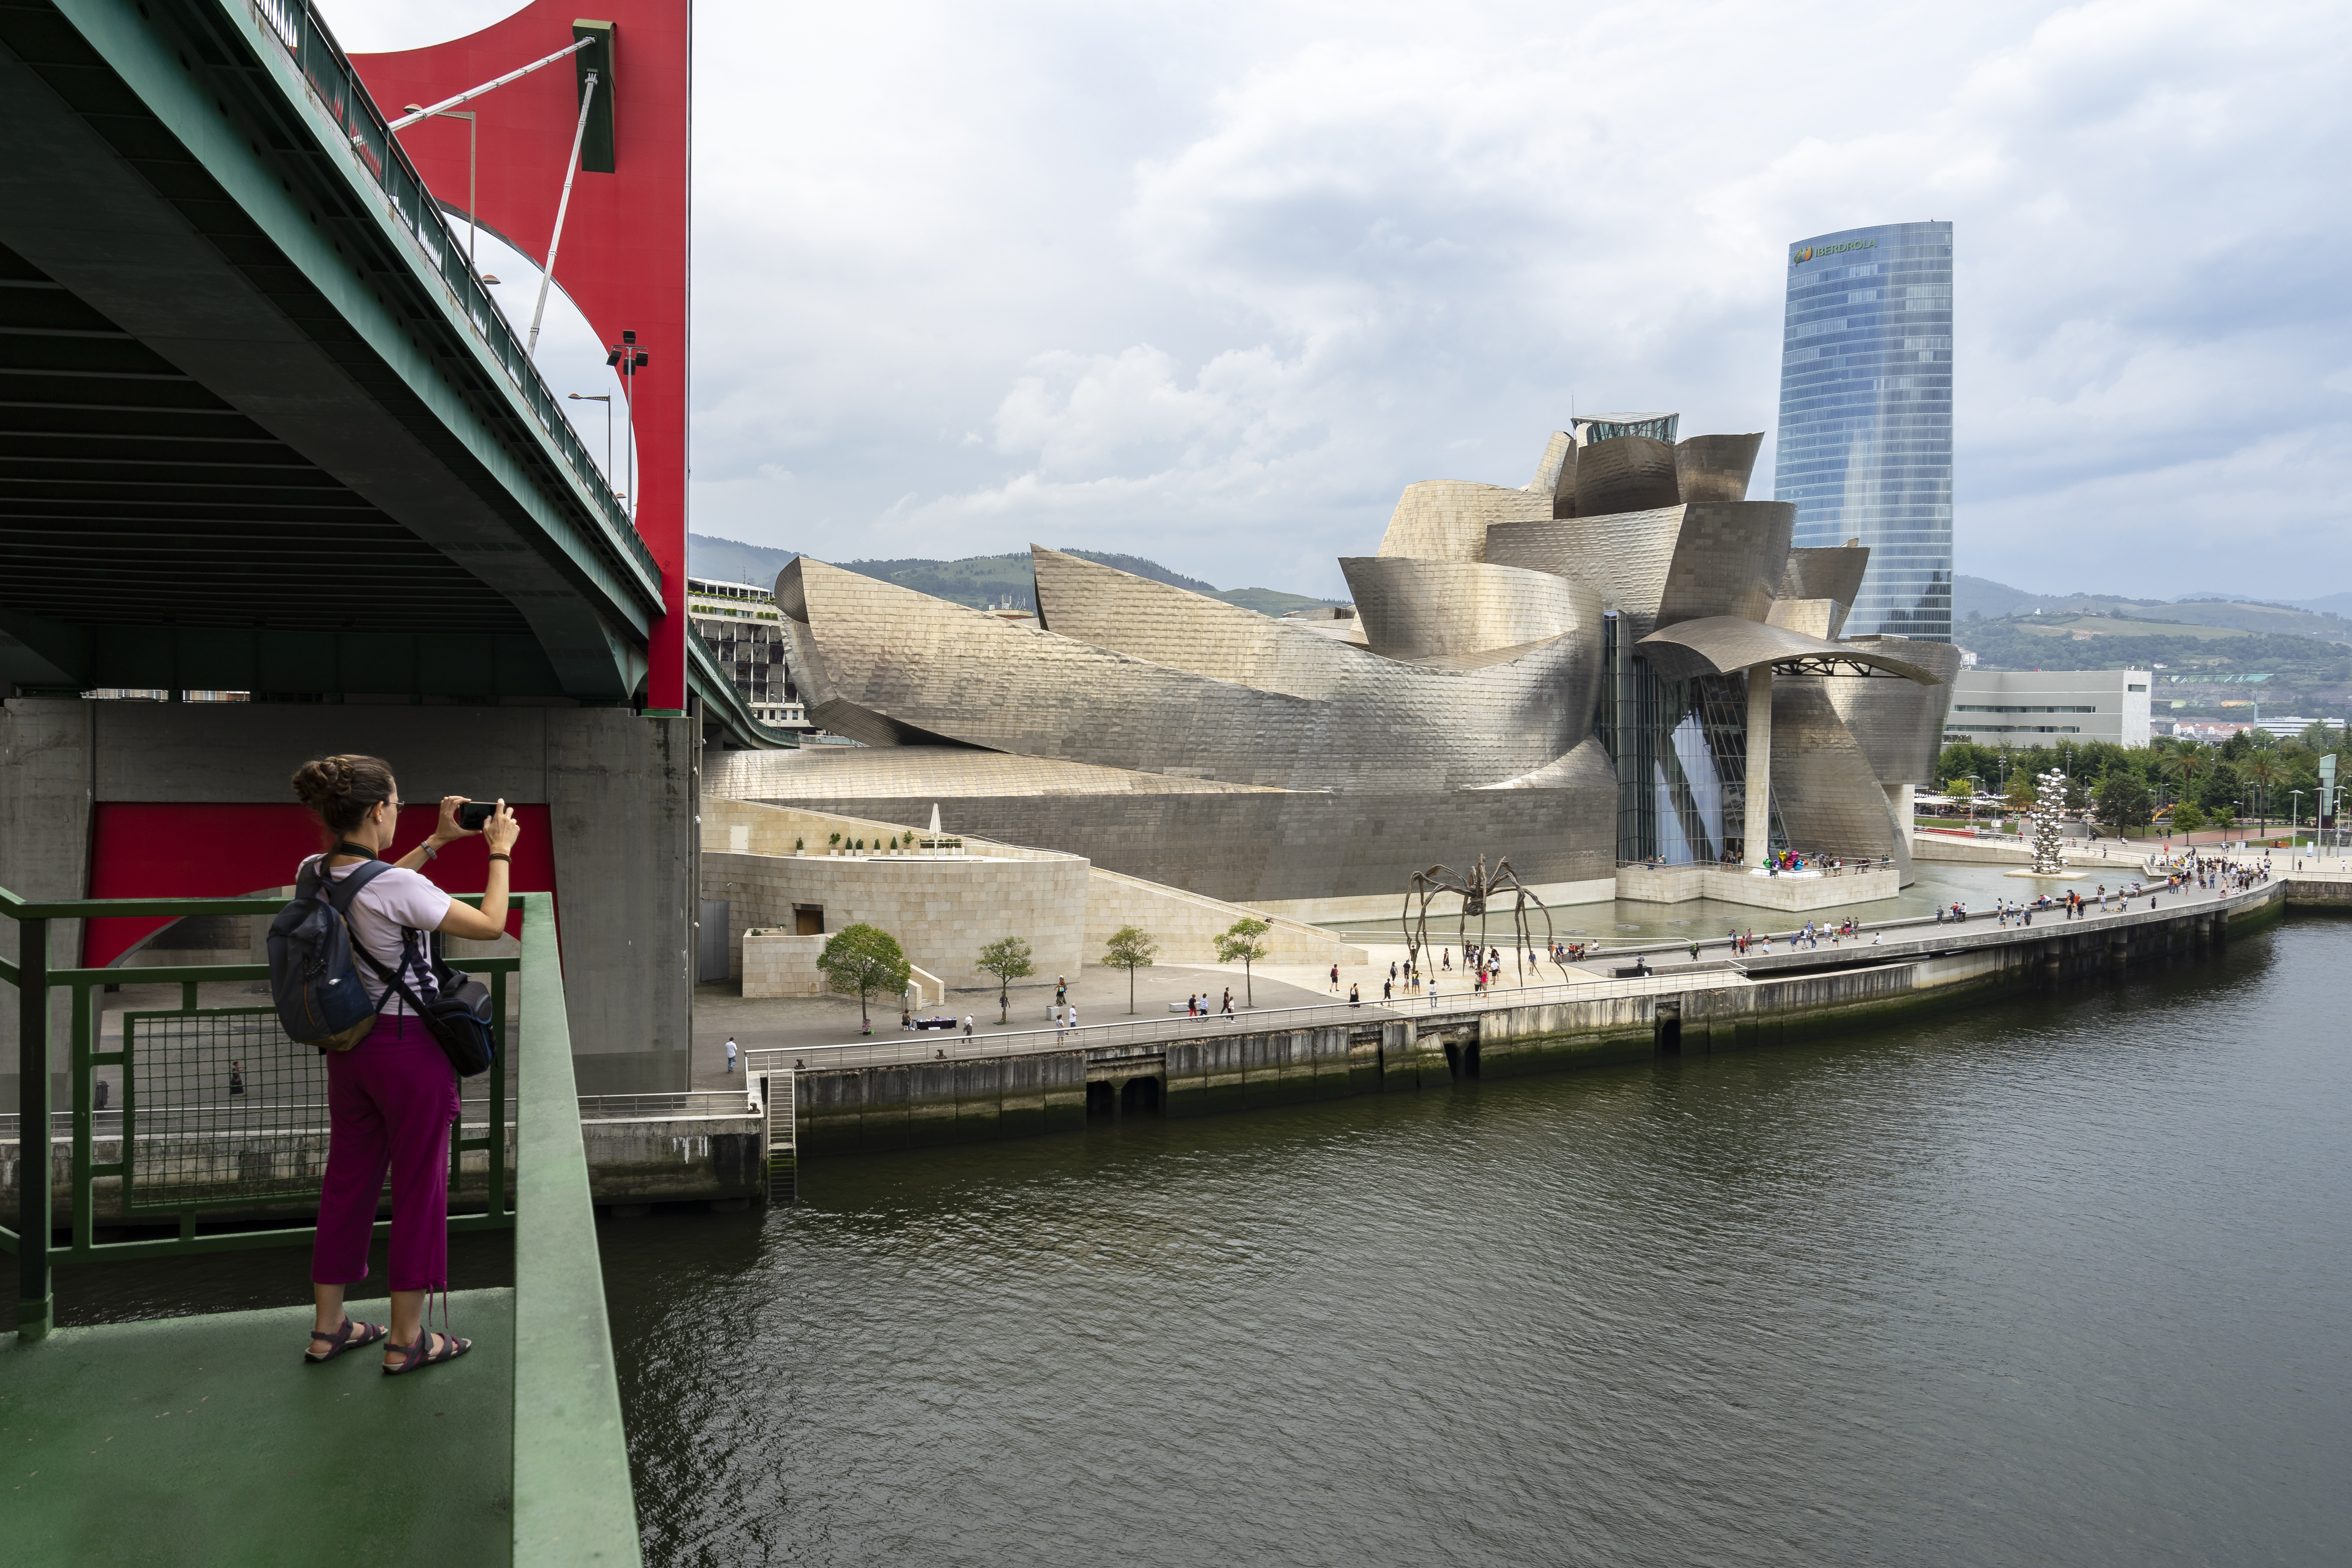 Tourist taking photos with mobile of Guggenheim museum. Travel photography. Photography concept.